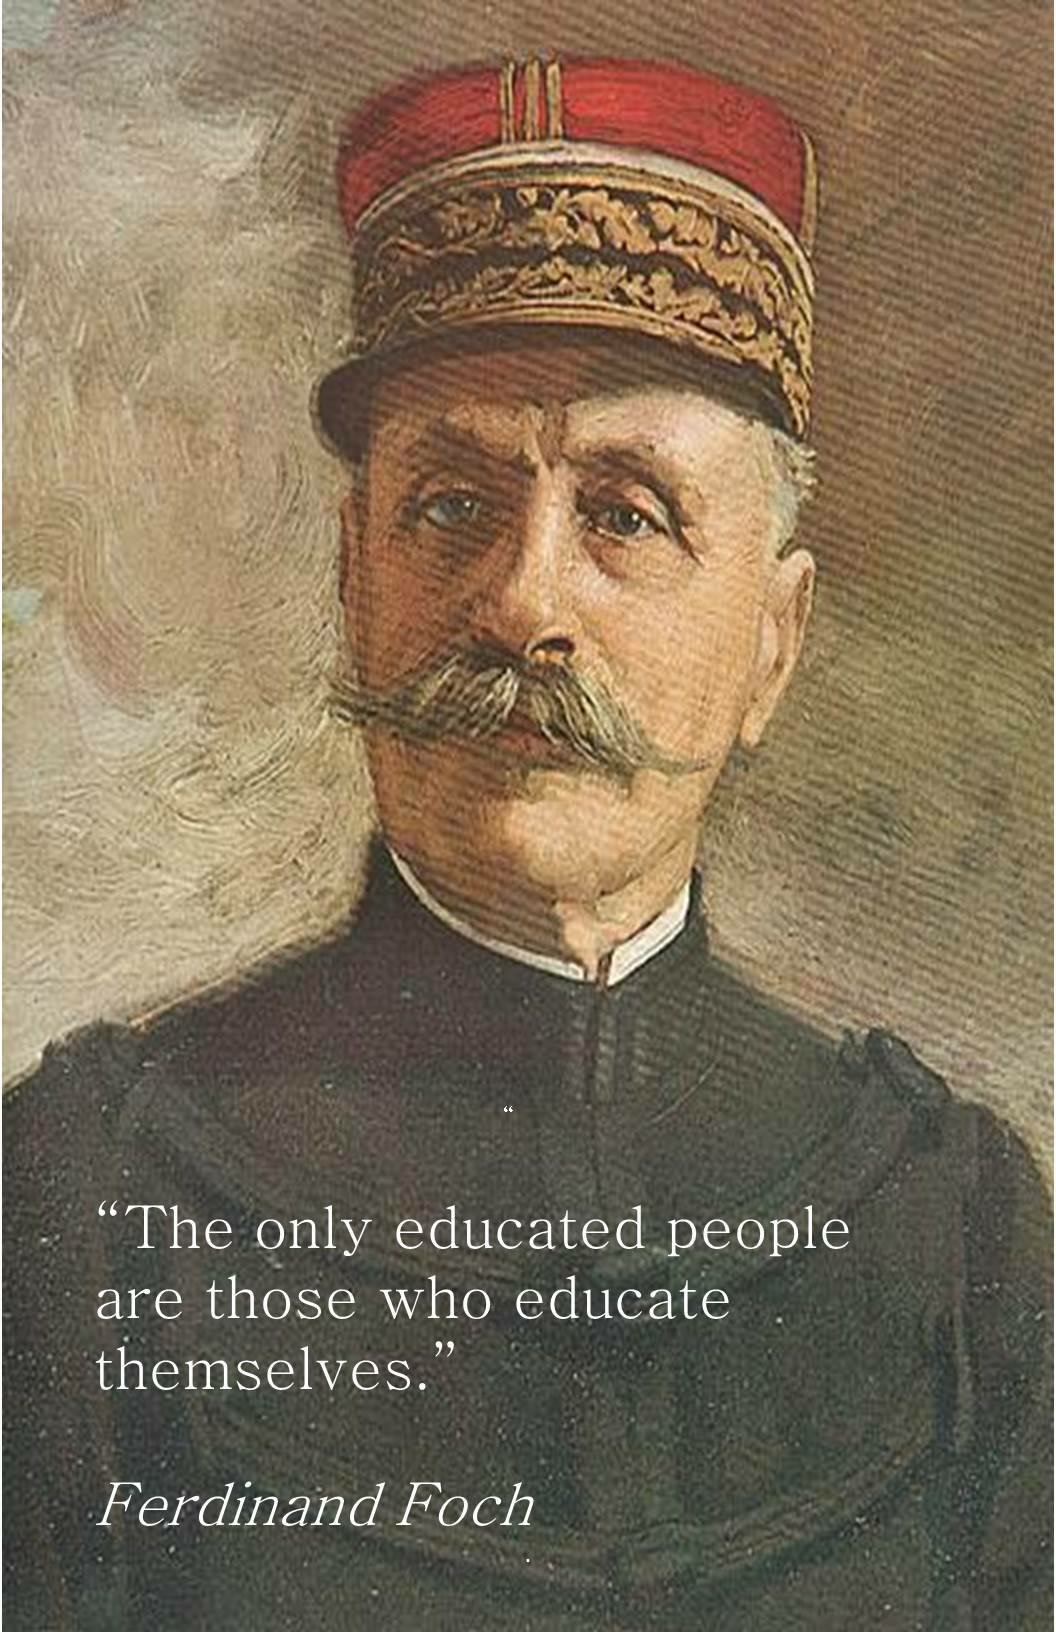 Foch on Education